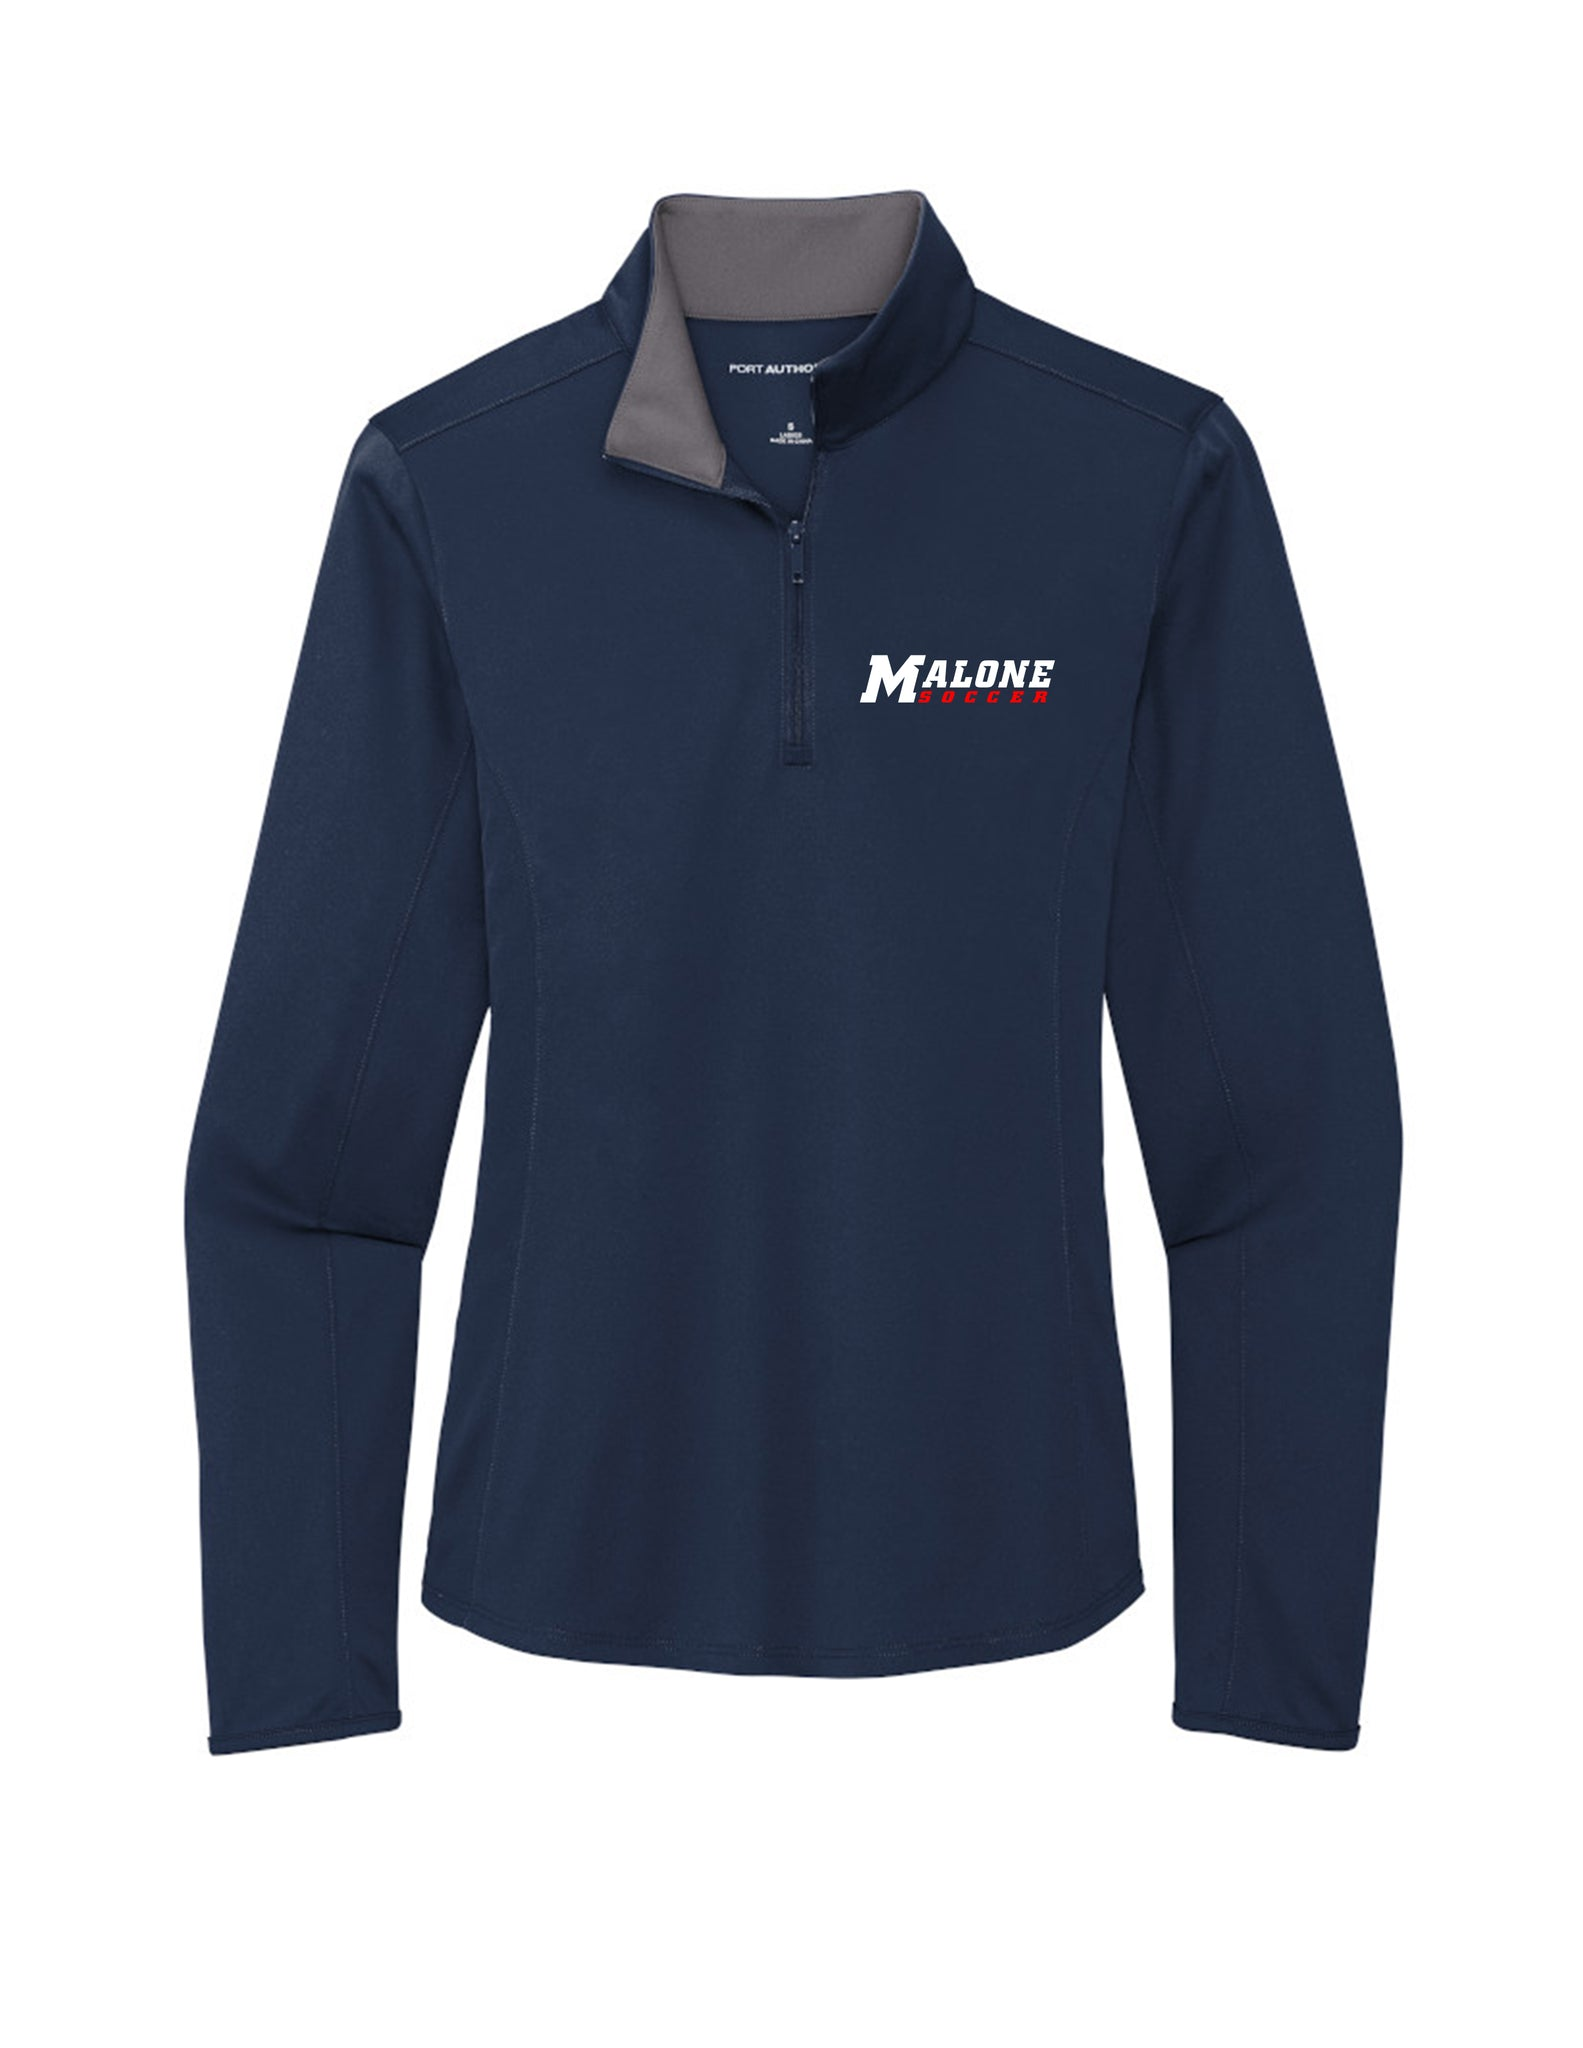 Malone Women's Soccer Womens 1/4 Zip